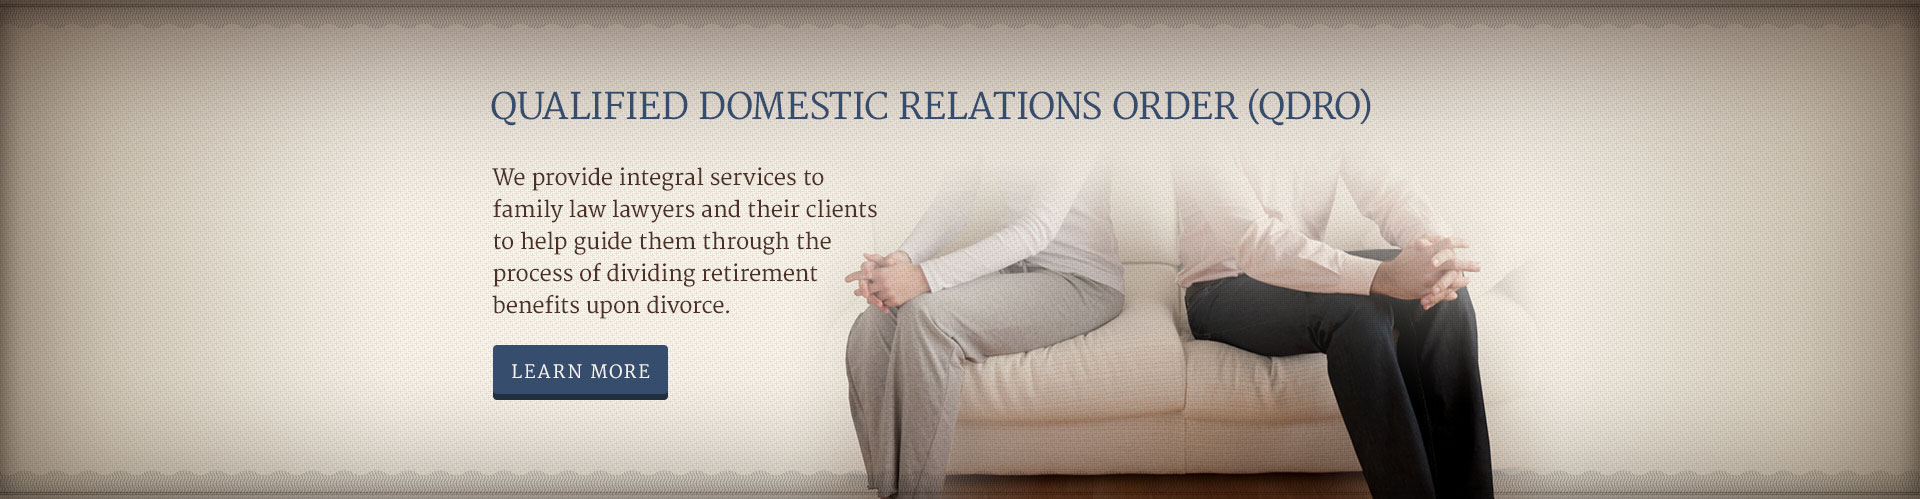 banner-qualified-domestic-relations-order